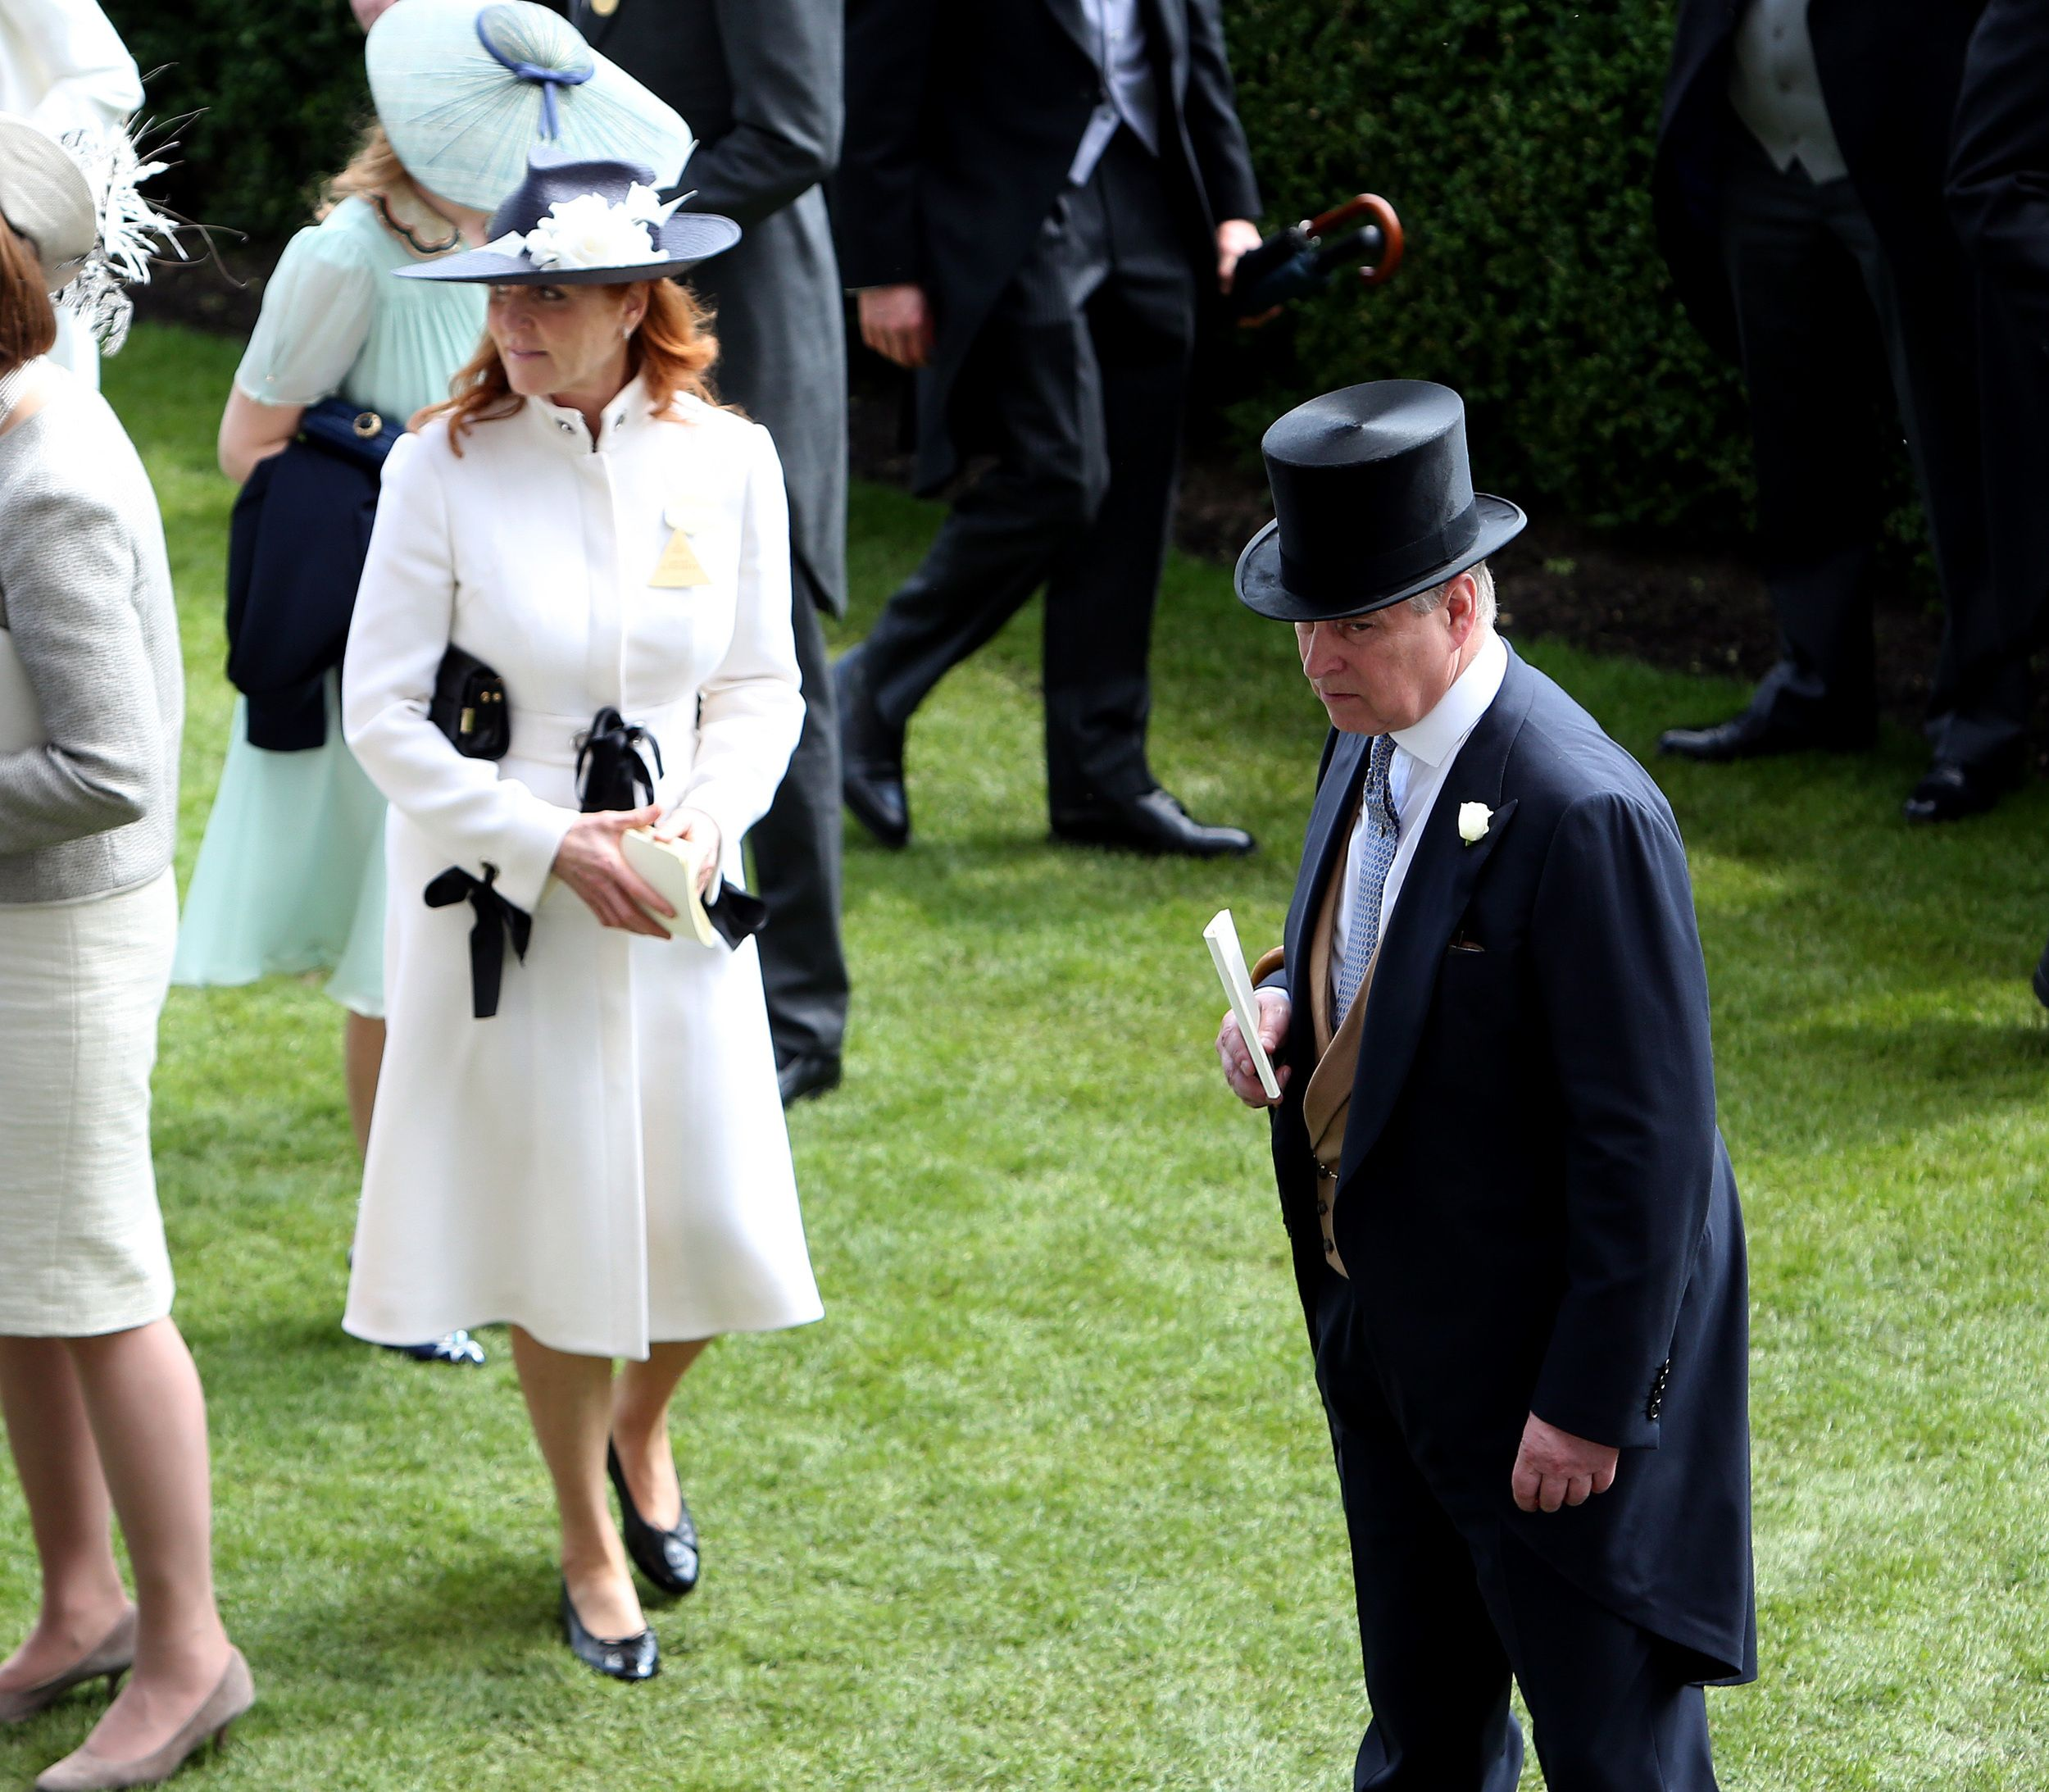 Andrew and Fergie Back together again? Duchess of york